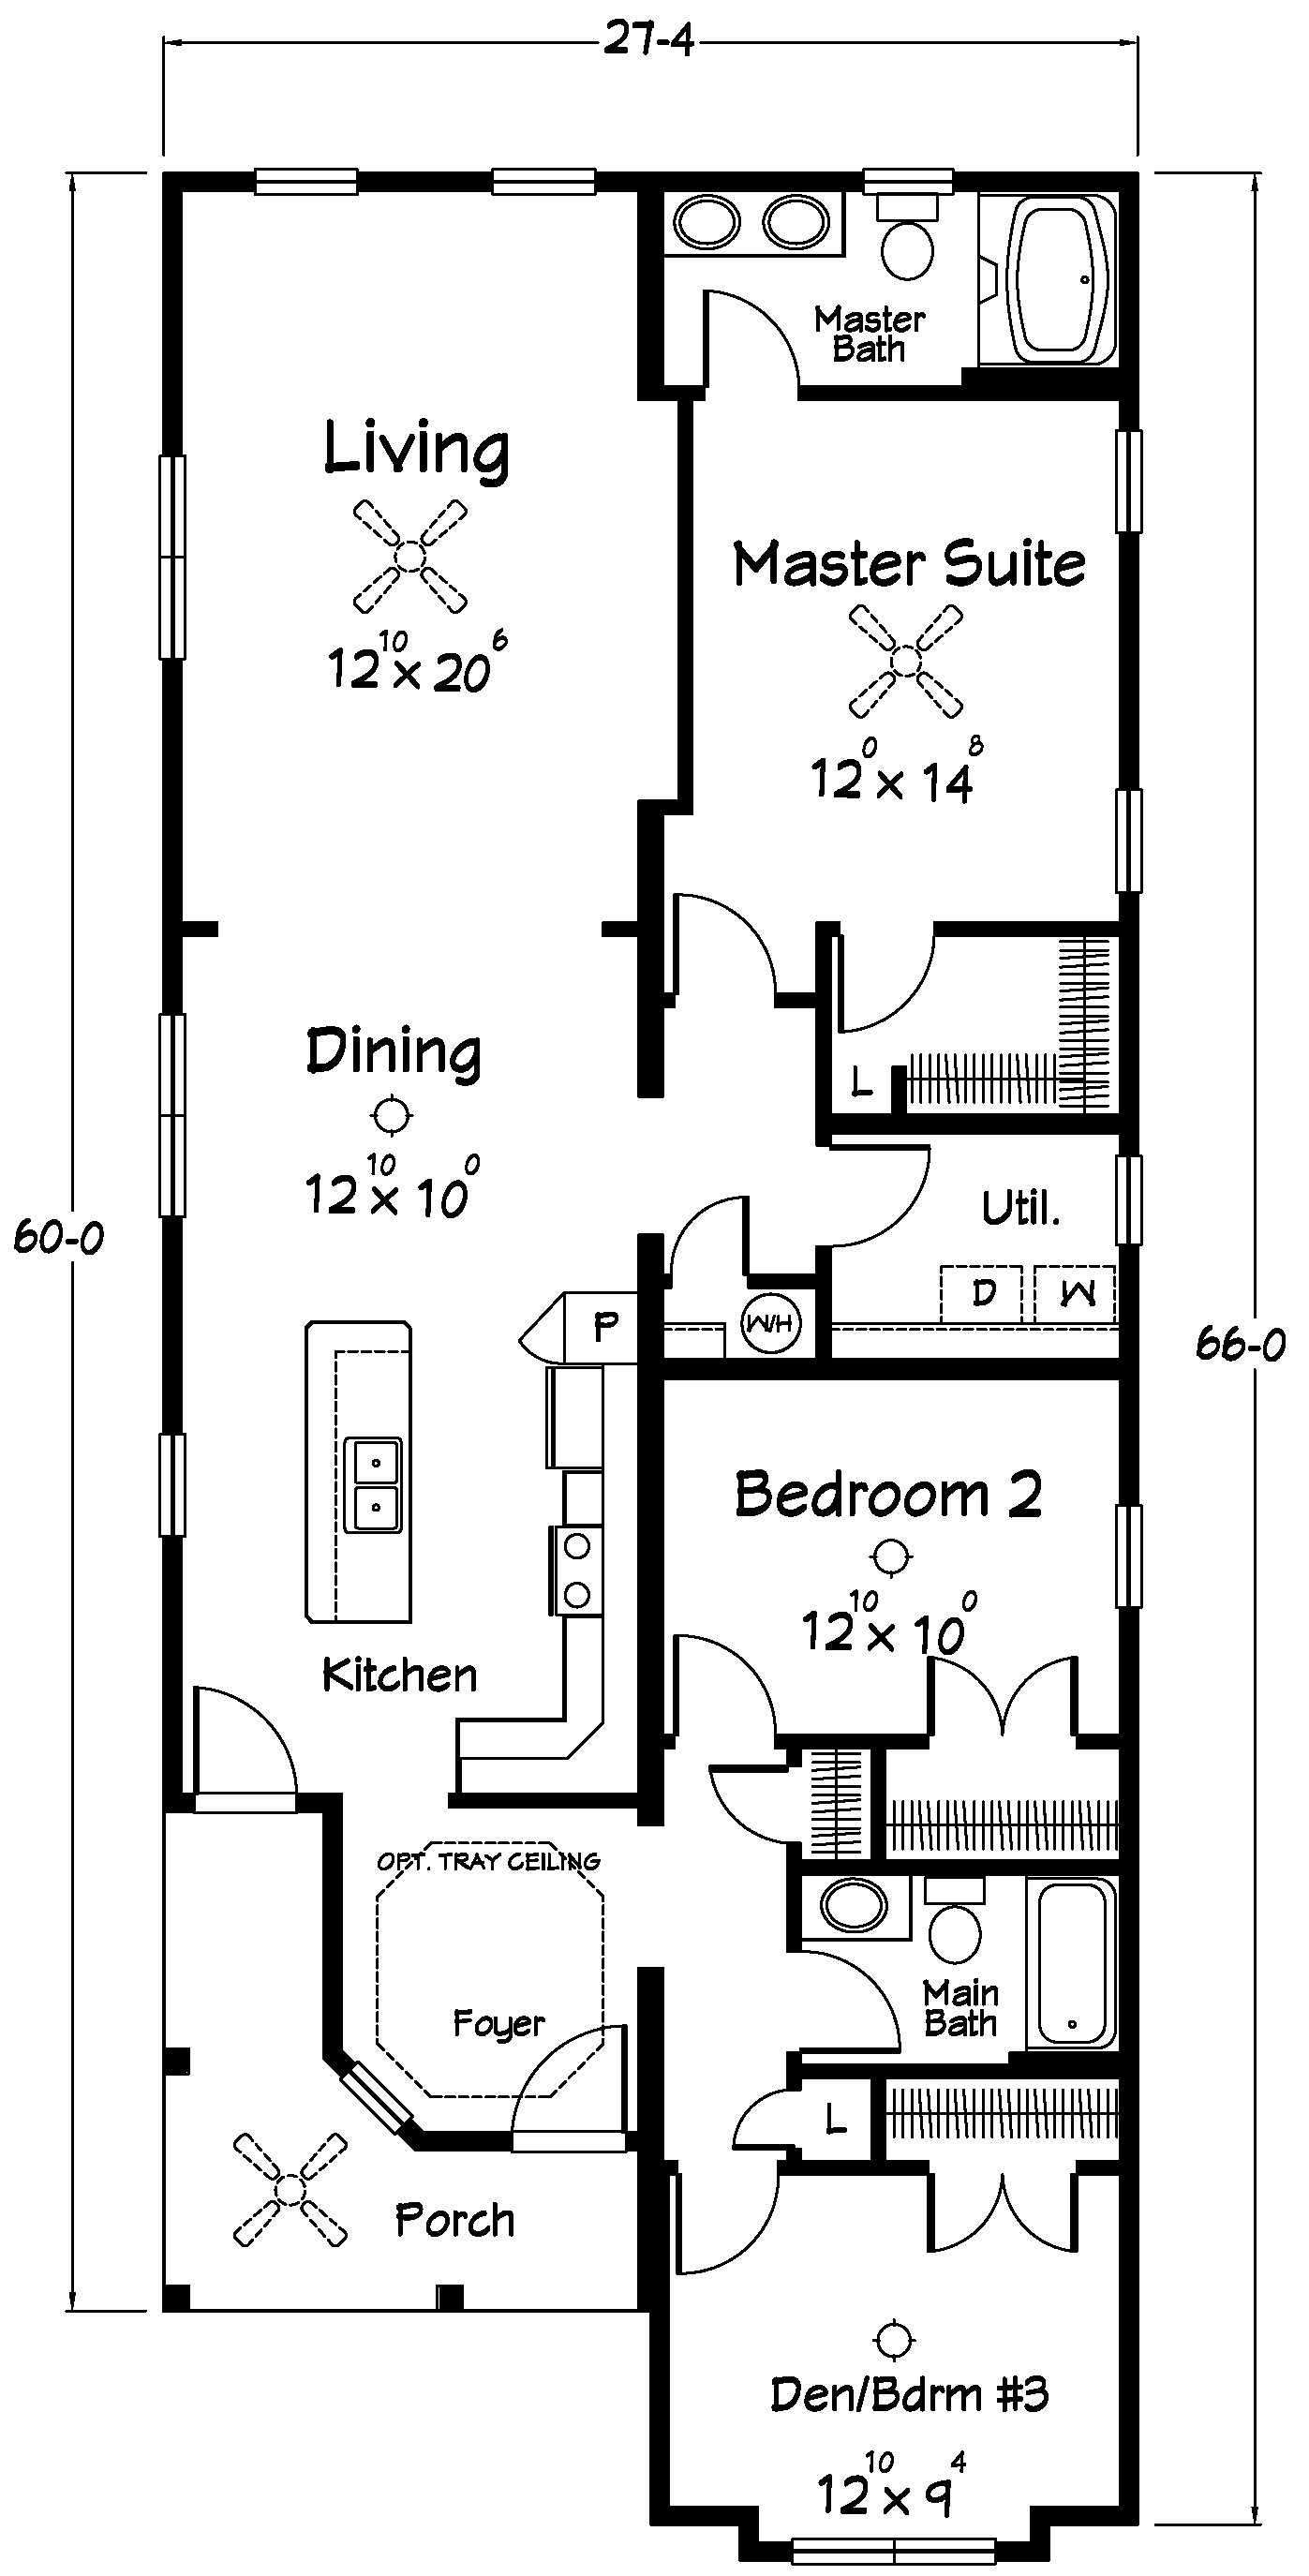 Floor Plans | Modular Home Manufacturer - Ritz-Craft Homes - PA, NY ...